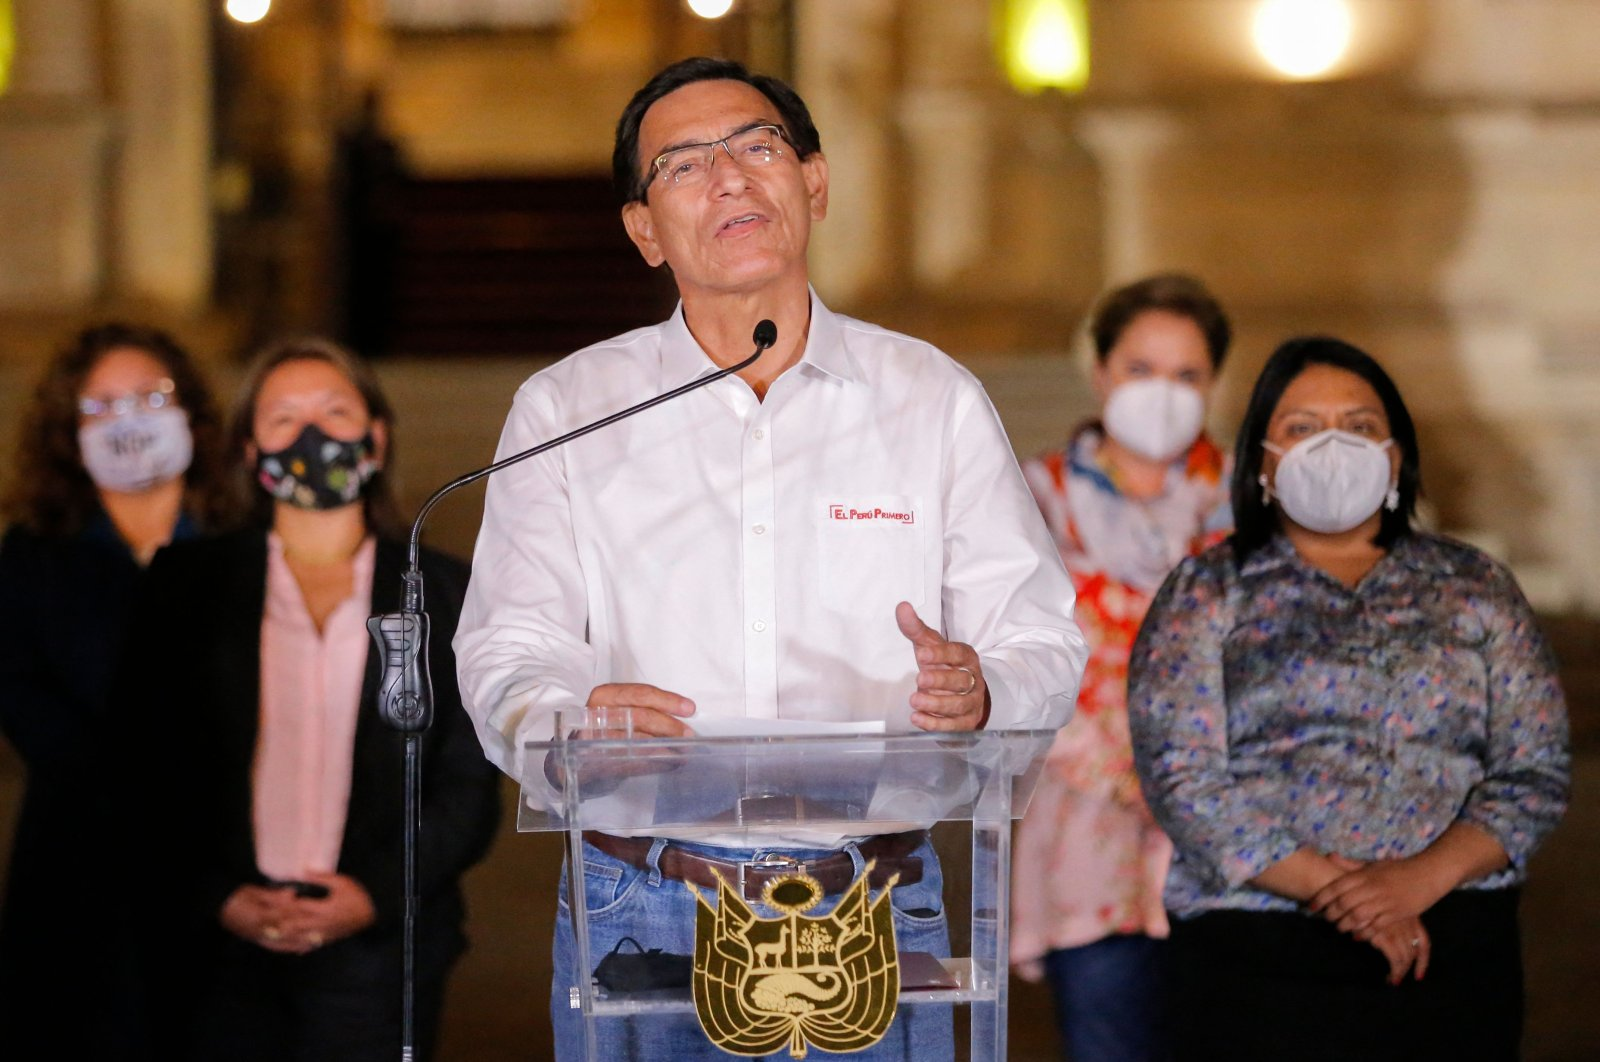 Peruvian President Martin Vizcarra gives a farewell statement to the press before leaving the presidential palace in Lima, following his impeachment by an overwhelming majority Congress vote during a second political trial against him in less than two months, Lima, Peru, Nov. 09, 2020. (AFP Photo)